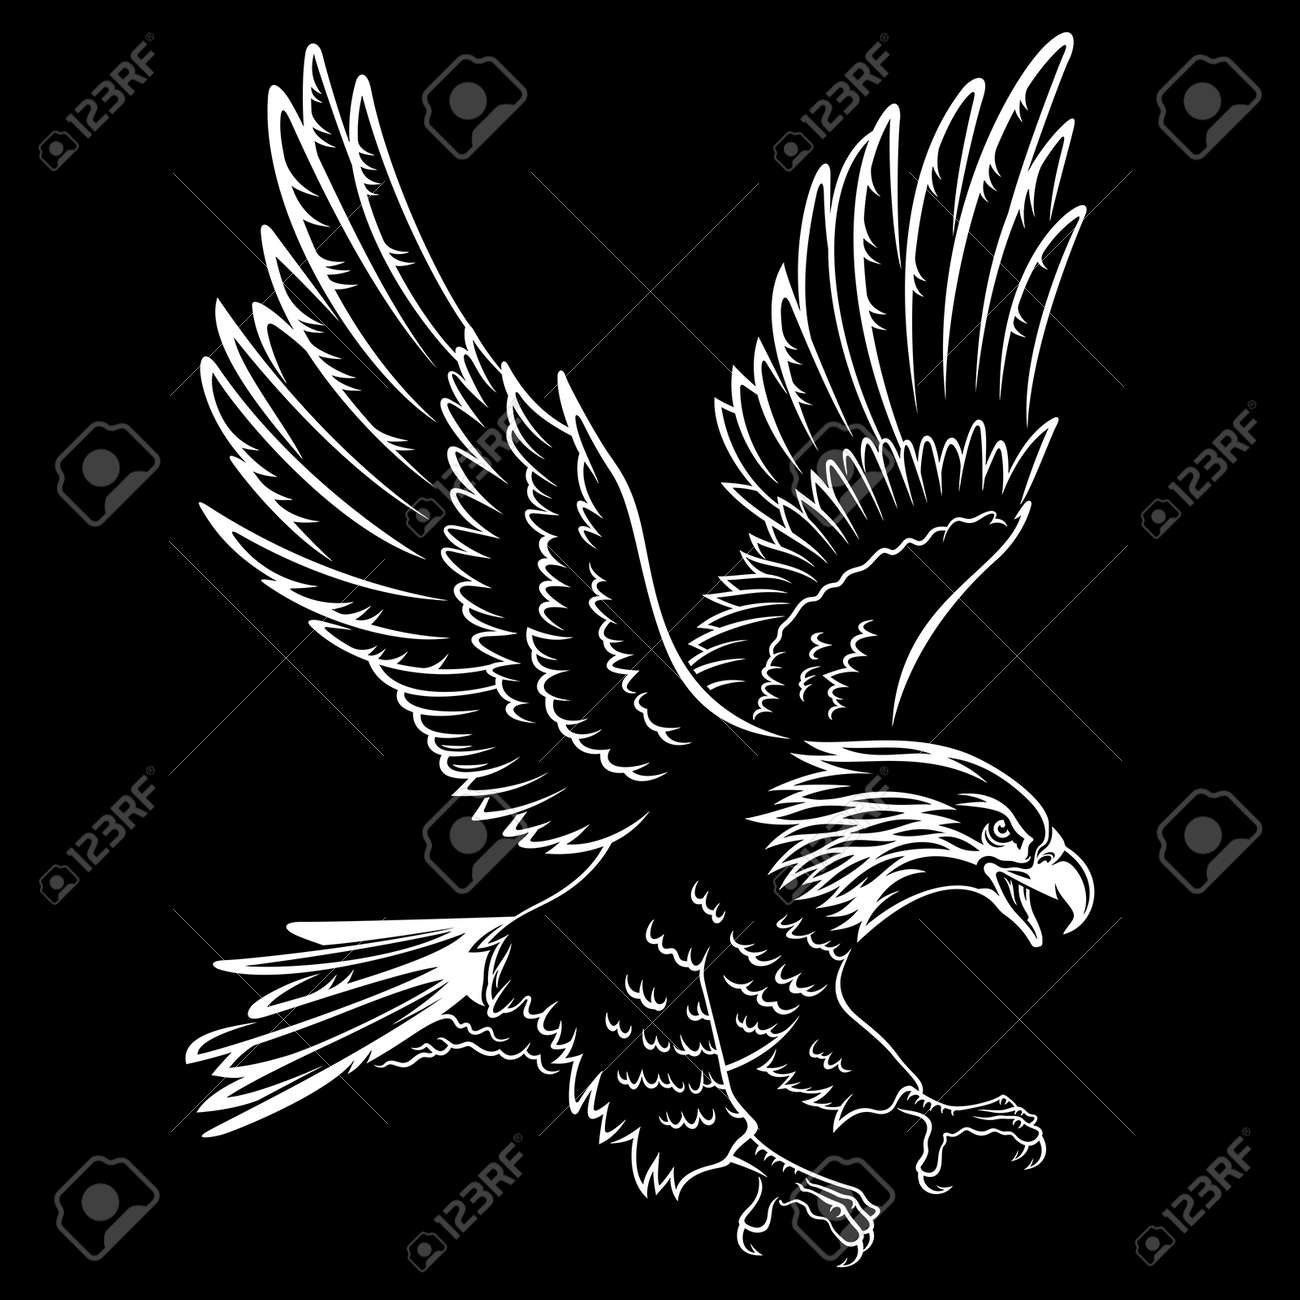 Bald Eagle silhouette isolated on black. This vector illustration can be used as a print on T-shirts, tattoo element or other uses - 55953258